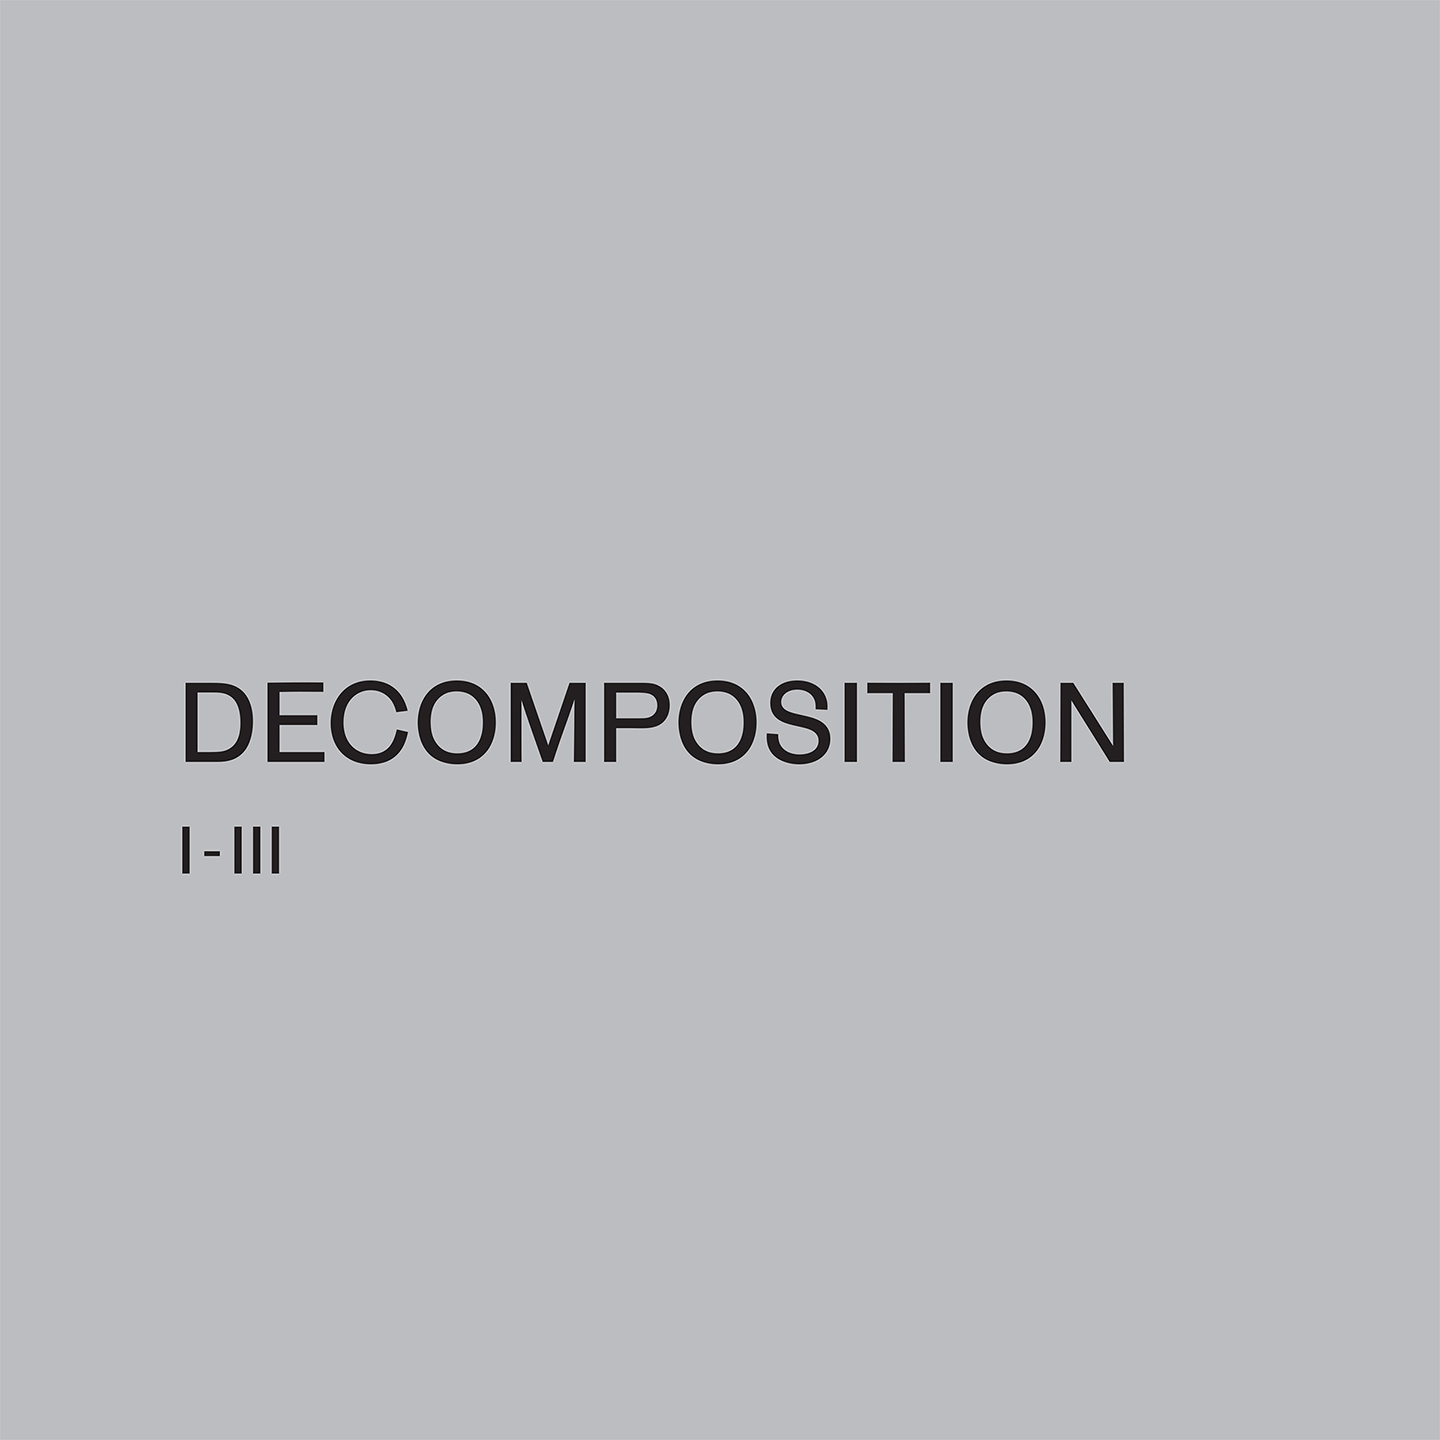 decomposition.indd